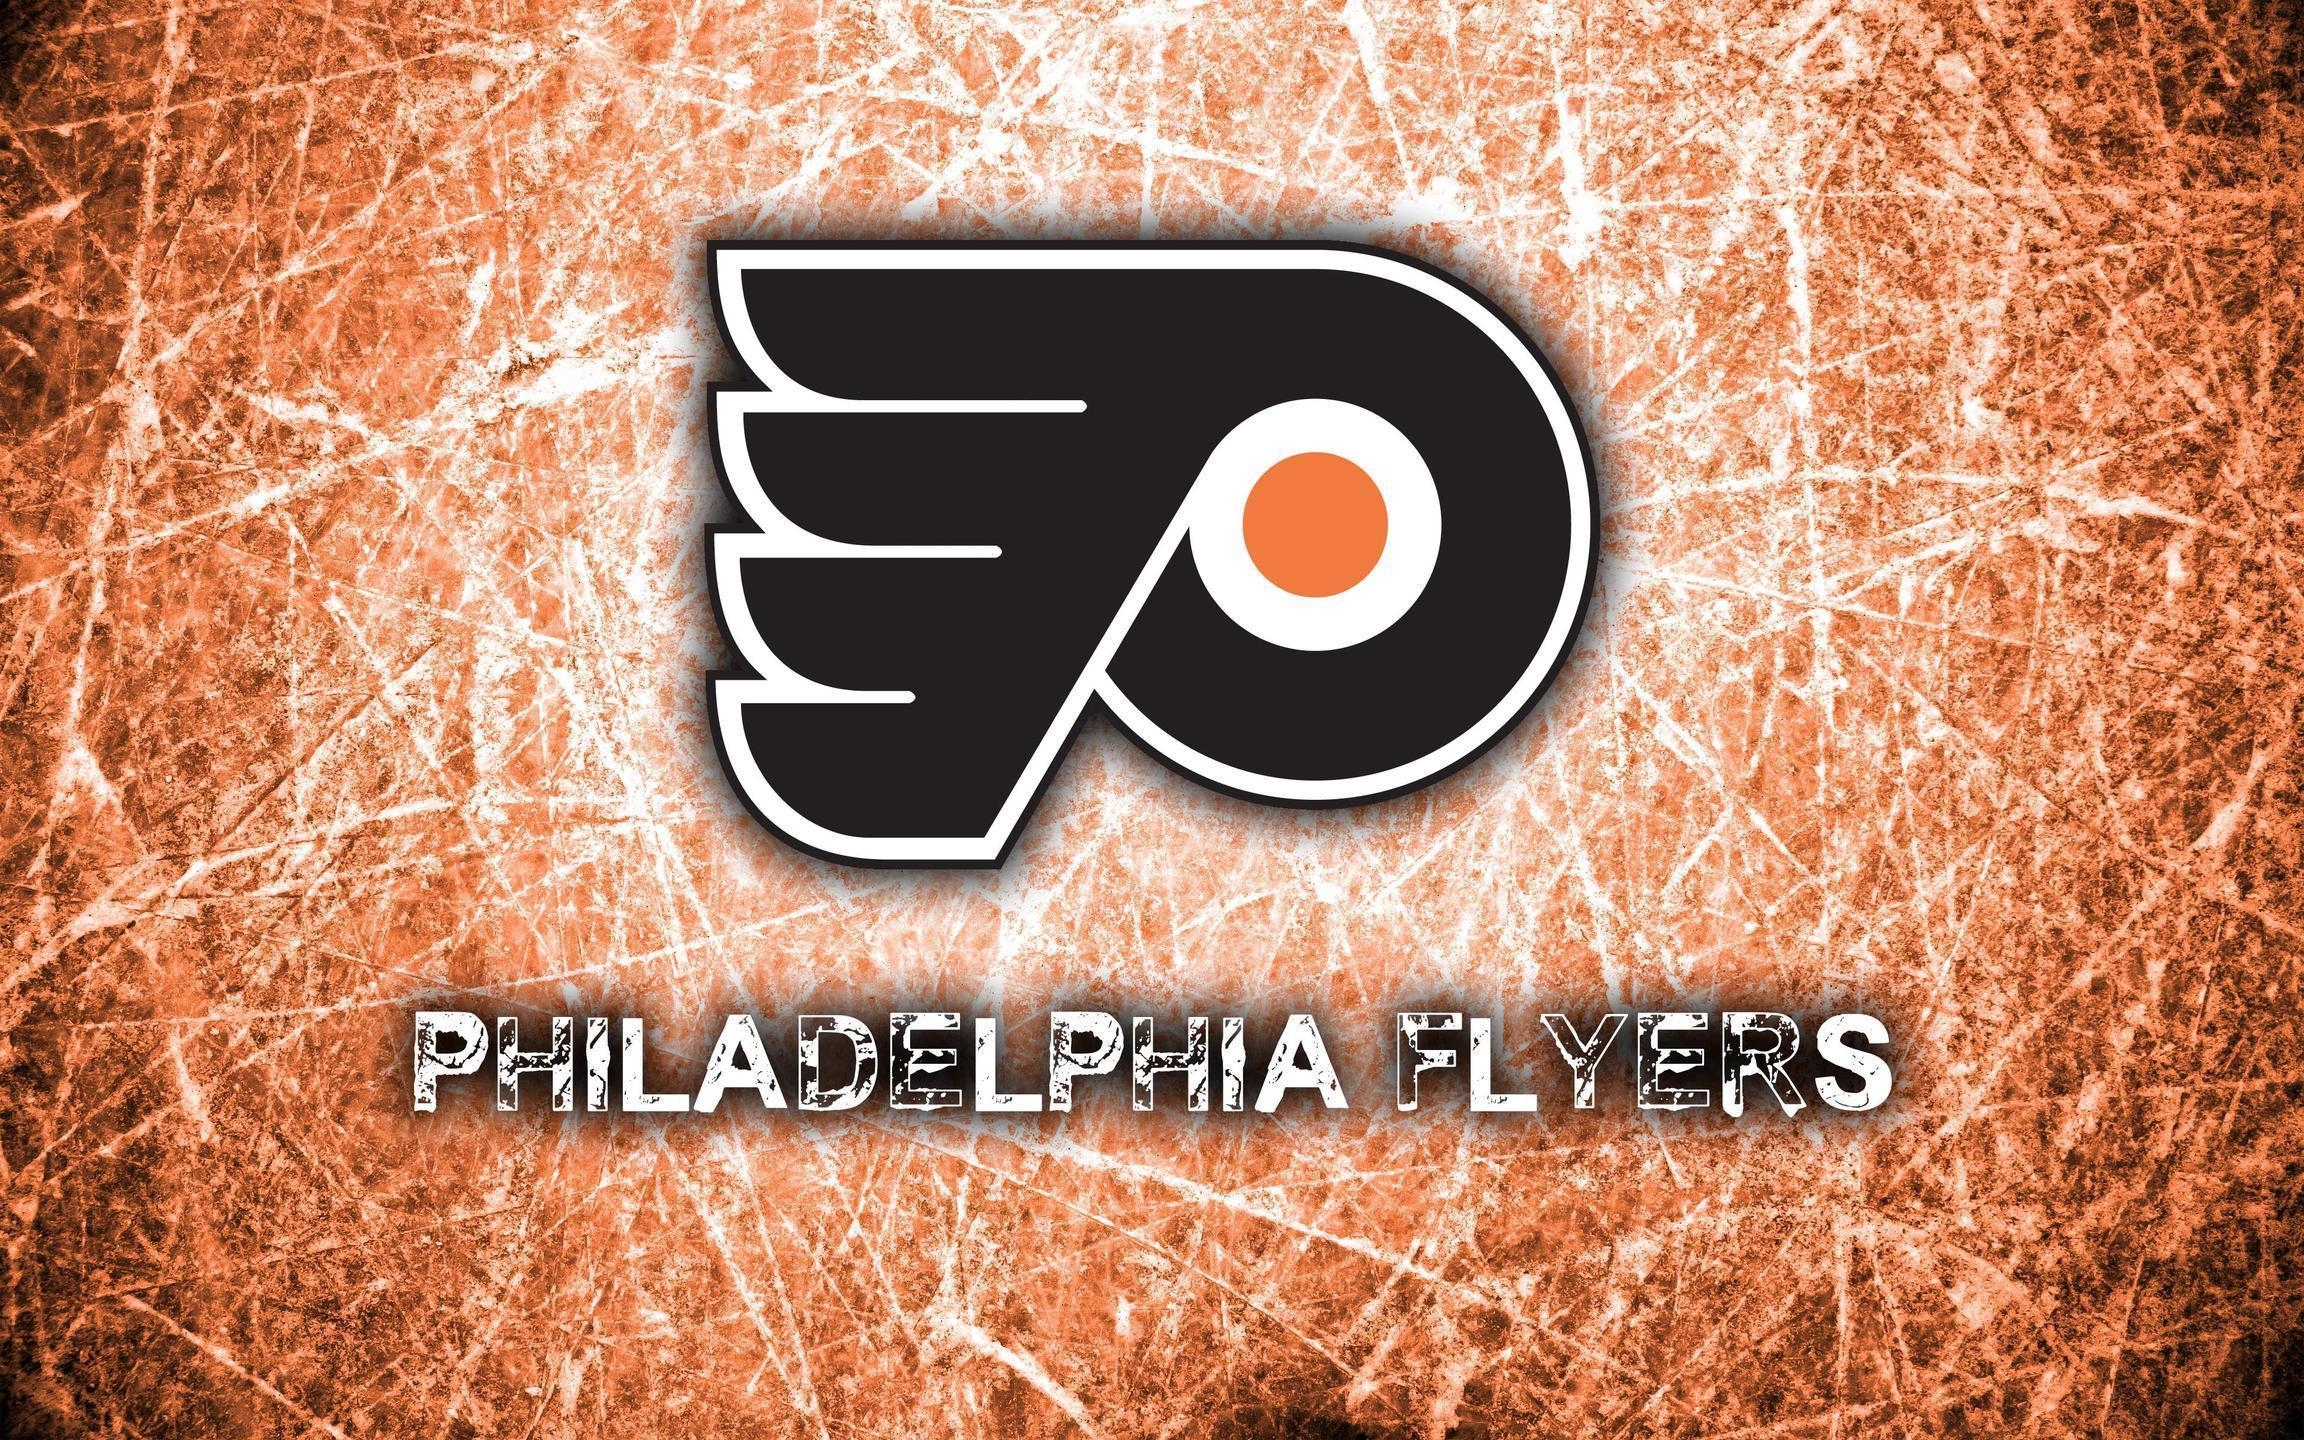 Philadelphia Flyers Desktop Wallpapers 2304x1440